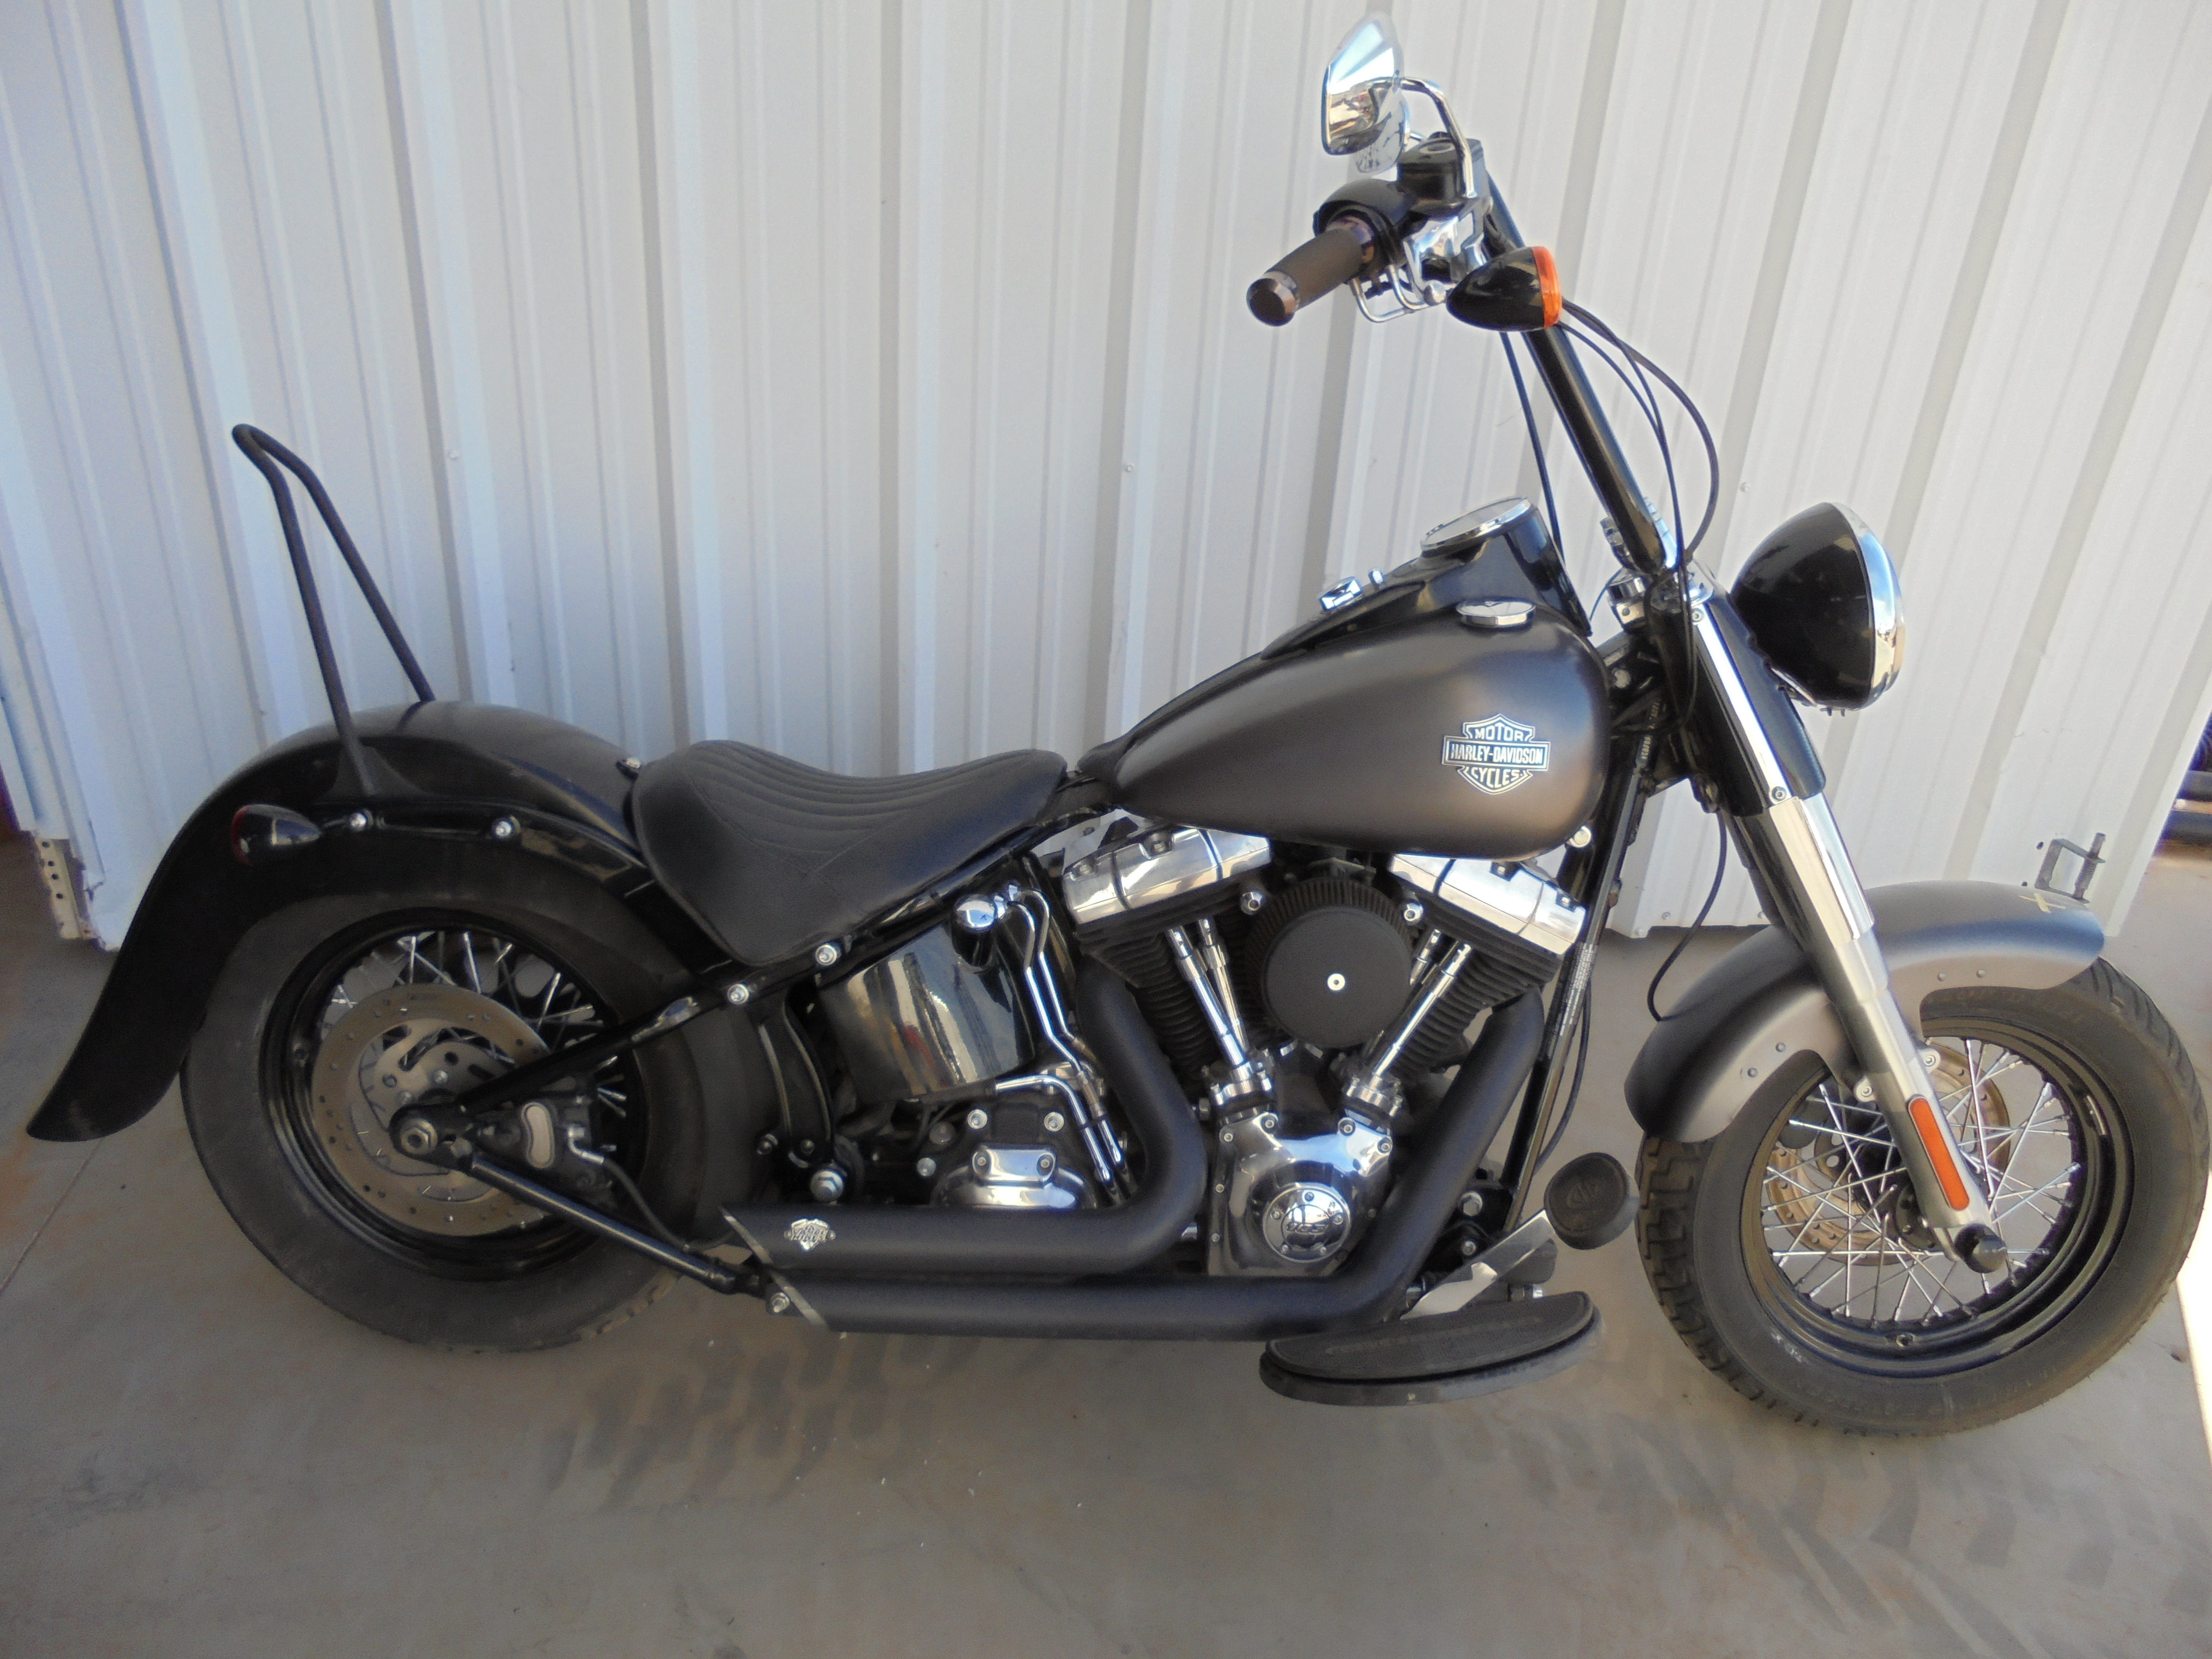 harley davidson softail slim for sale 762 bikes page 1 chopperexchange. Black Bedroom Furniture Sets. Home Design Ideas